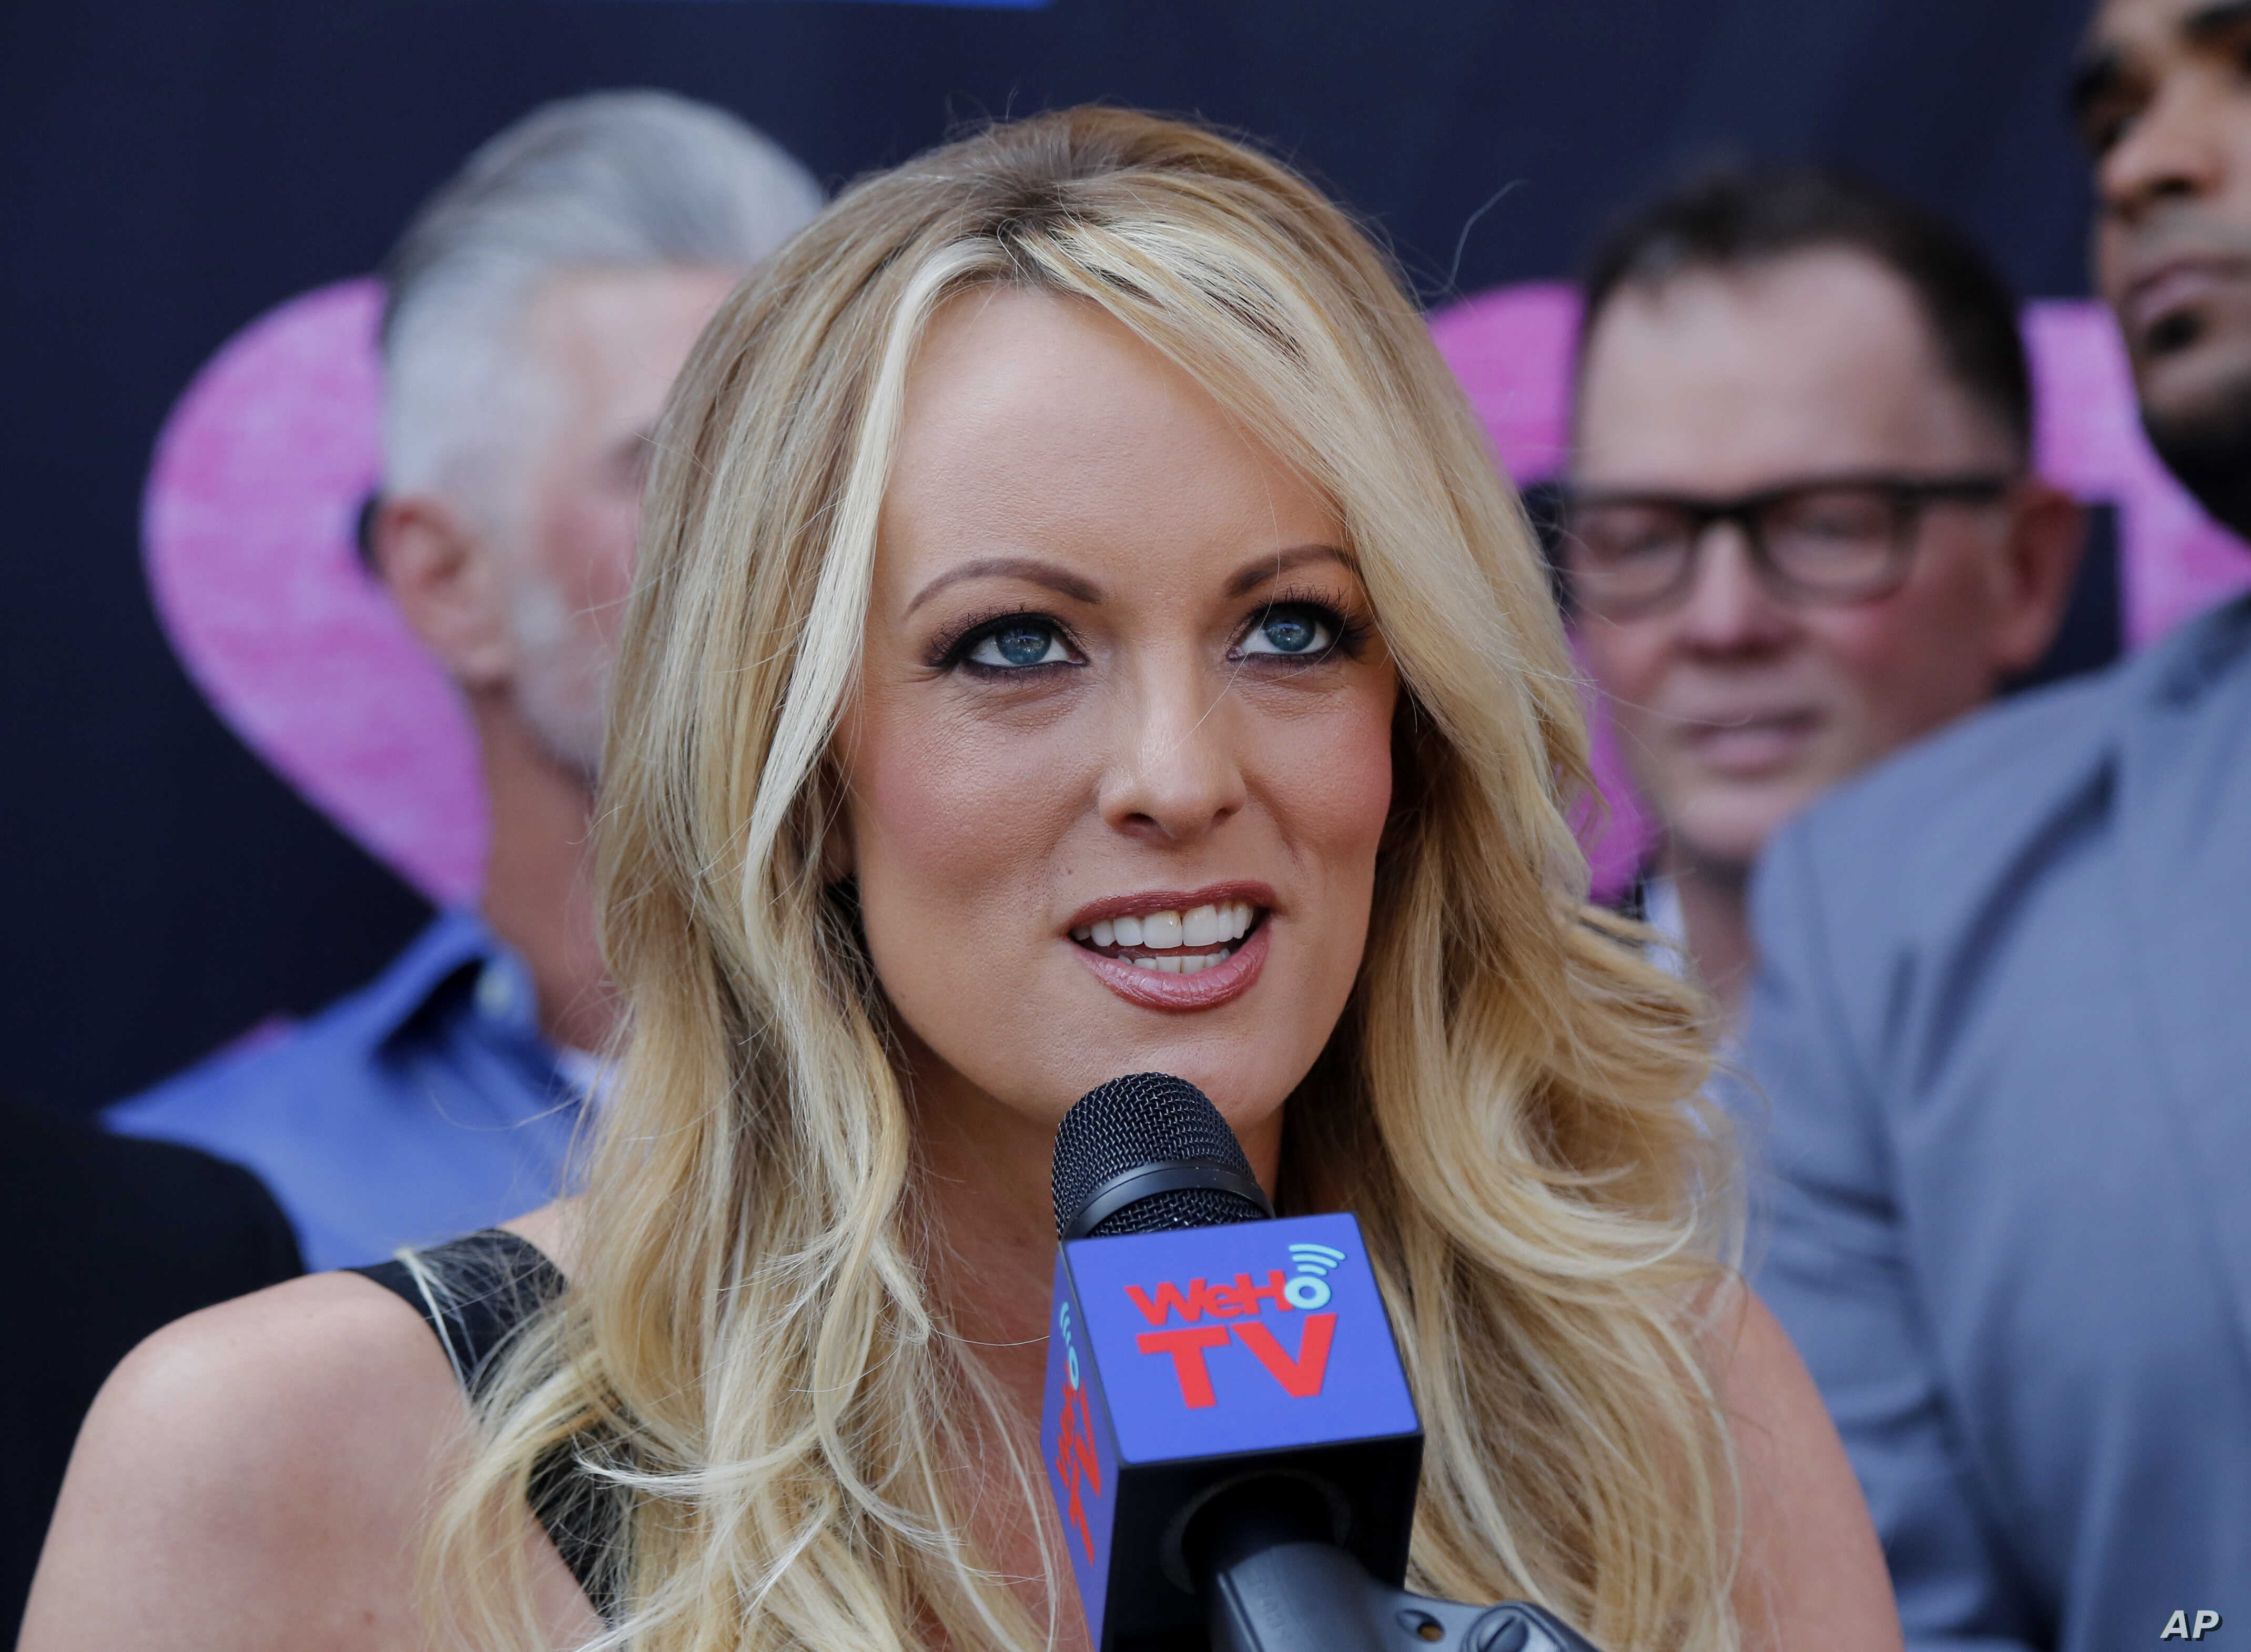 Stormy Daniels speaks during a ceremony for her in West Hollywood, Calif., May 23, 2018.